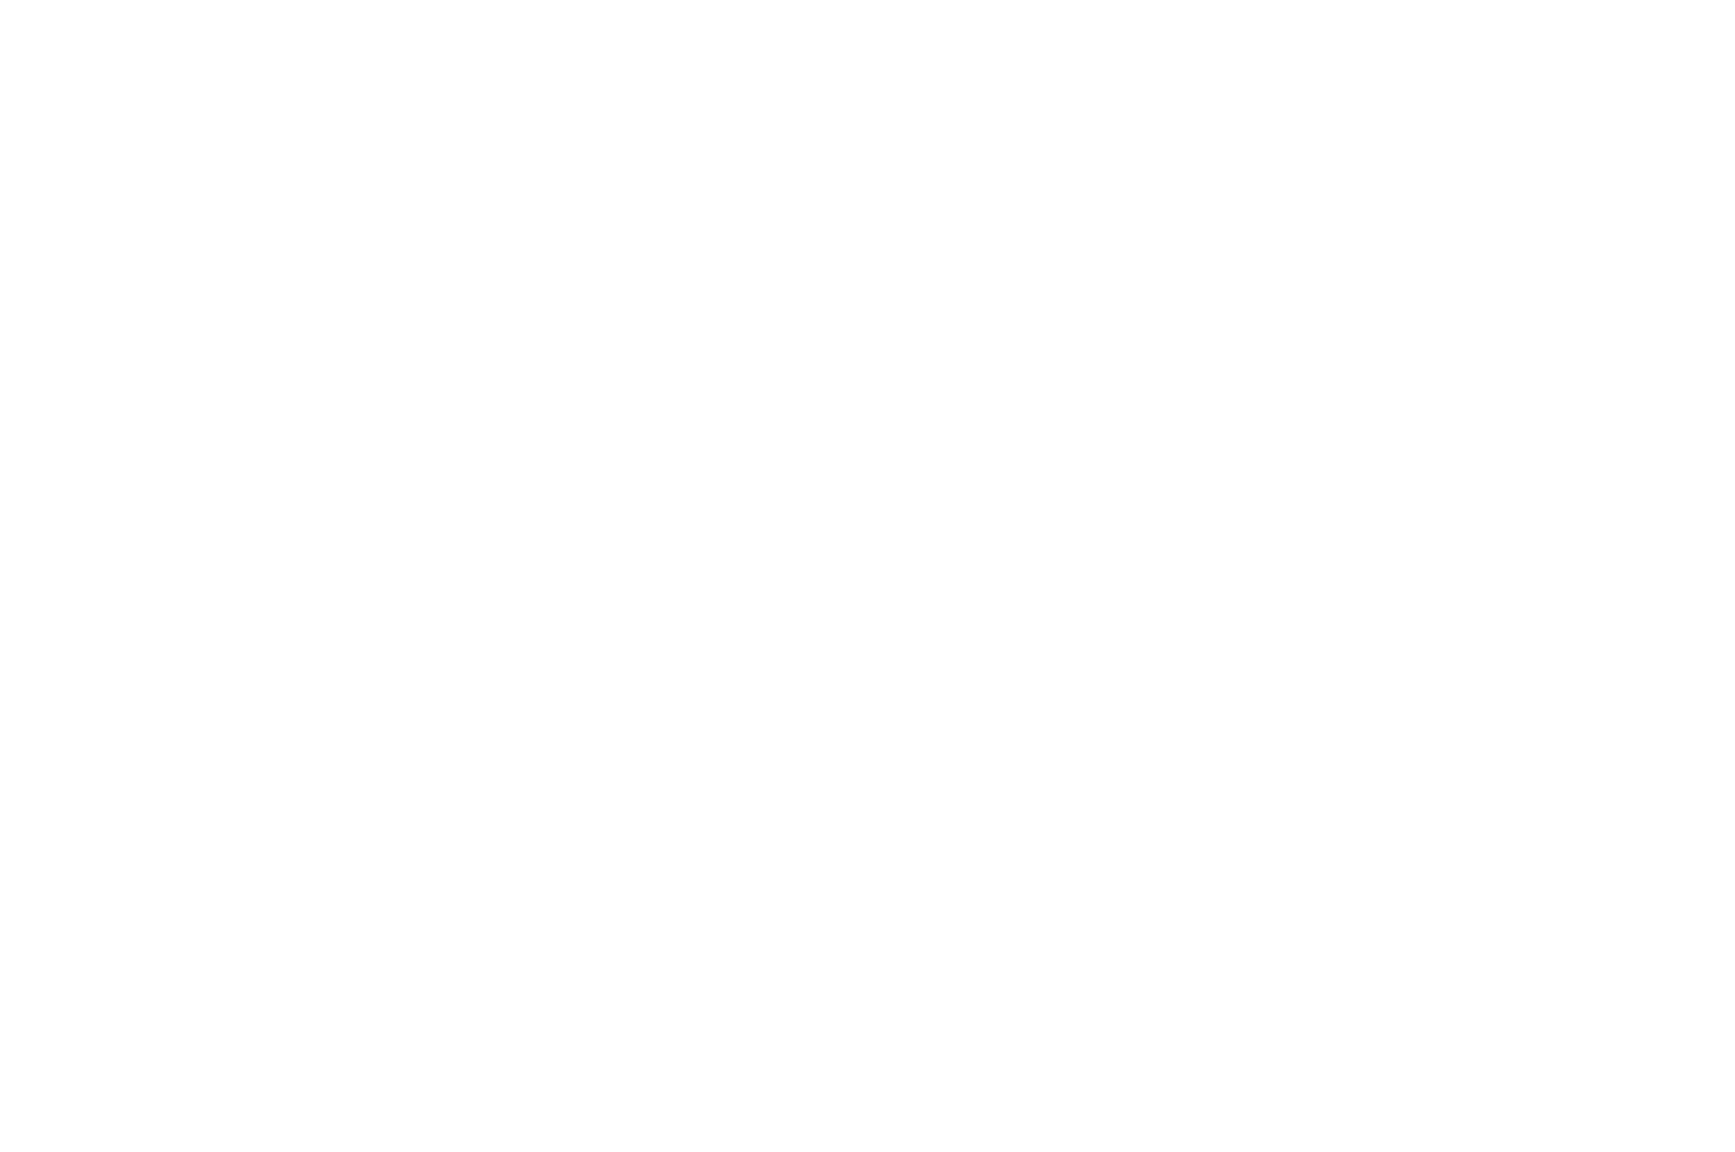 OFFICIAL SELECTION - Justice on Trial Film Festival - 2019.png